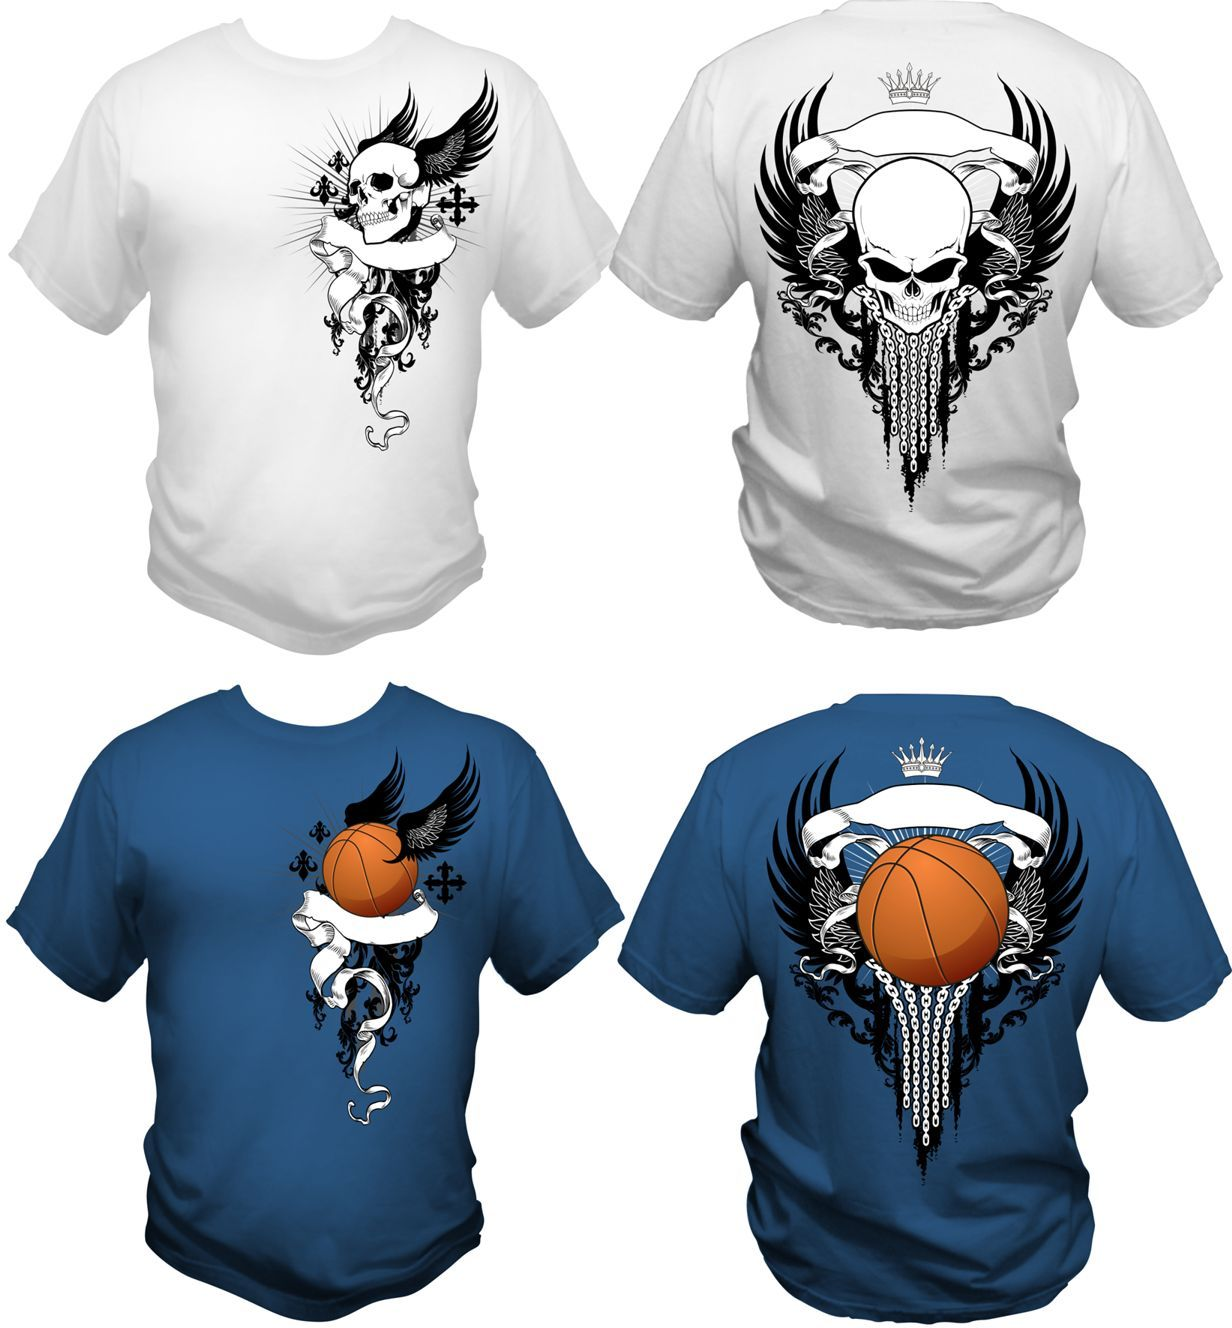 Design t shirt picture - Free T Shirt Design By Artamp Deviantart Com On Deviantart